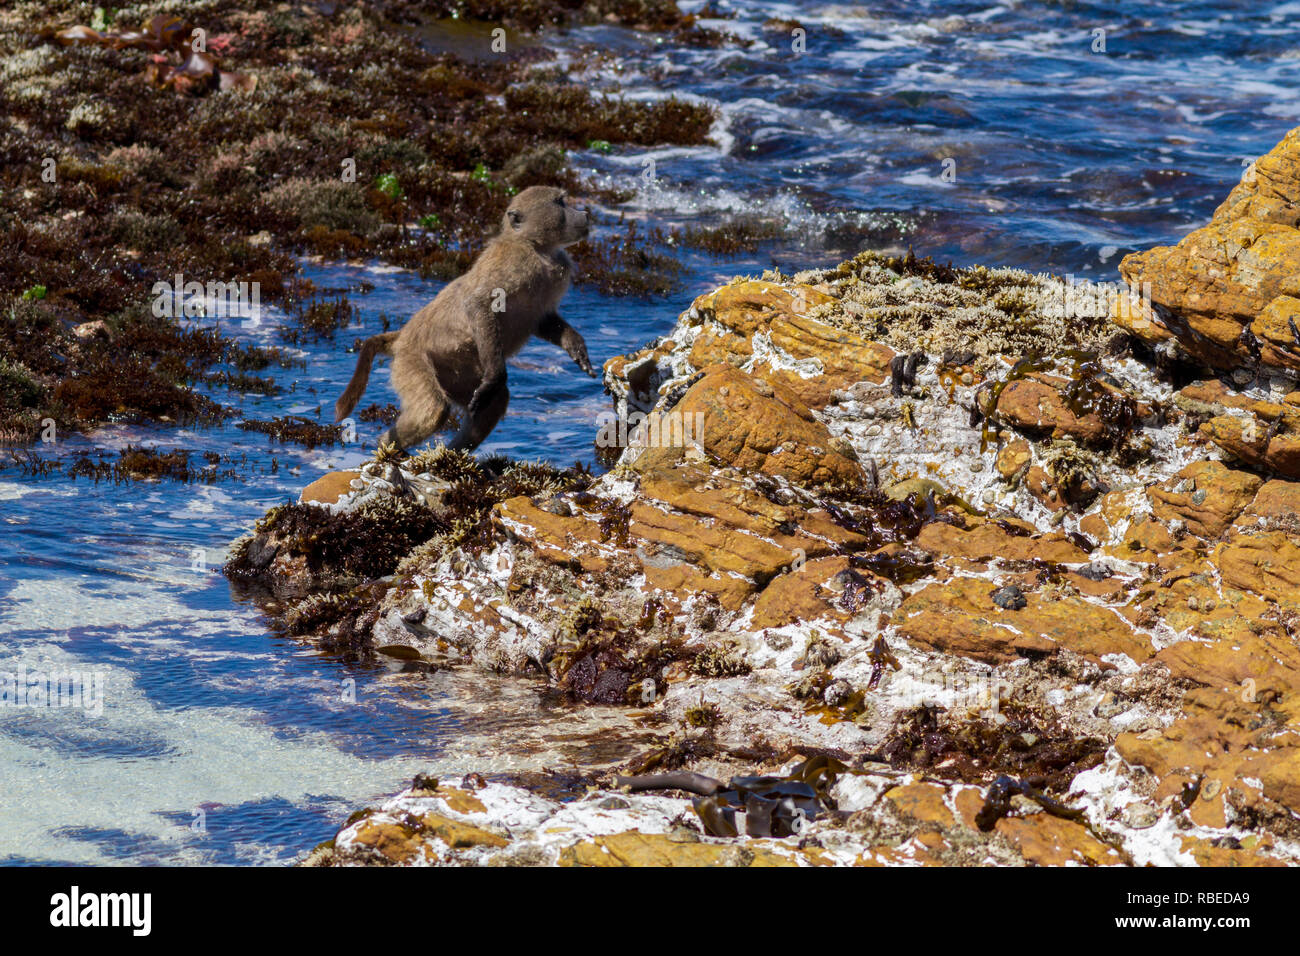 Series of shots showing a Cape Baboon jumping across a stretch of sea on the beach, Cape Peninsula, South Africa - Stock Image